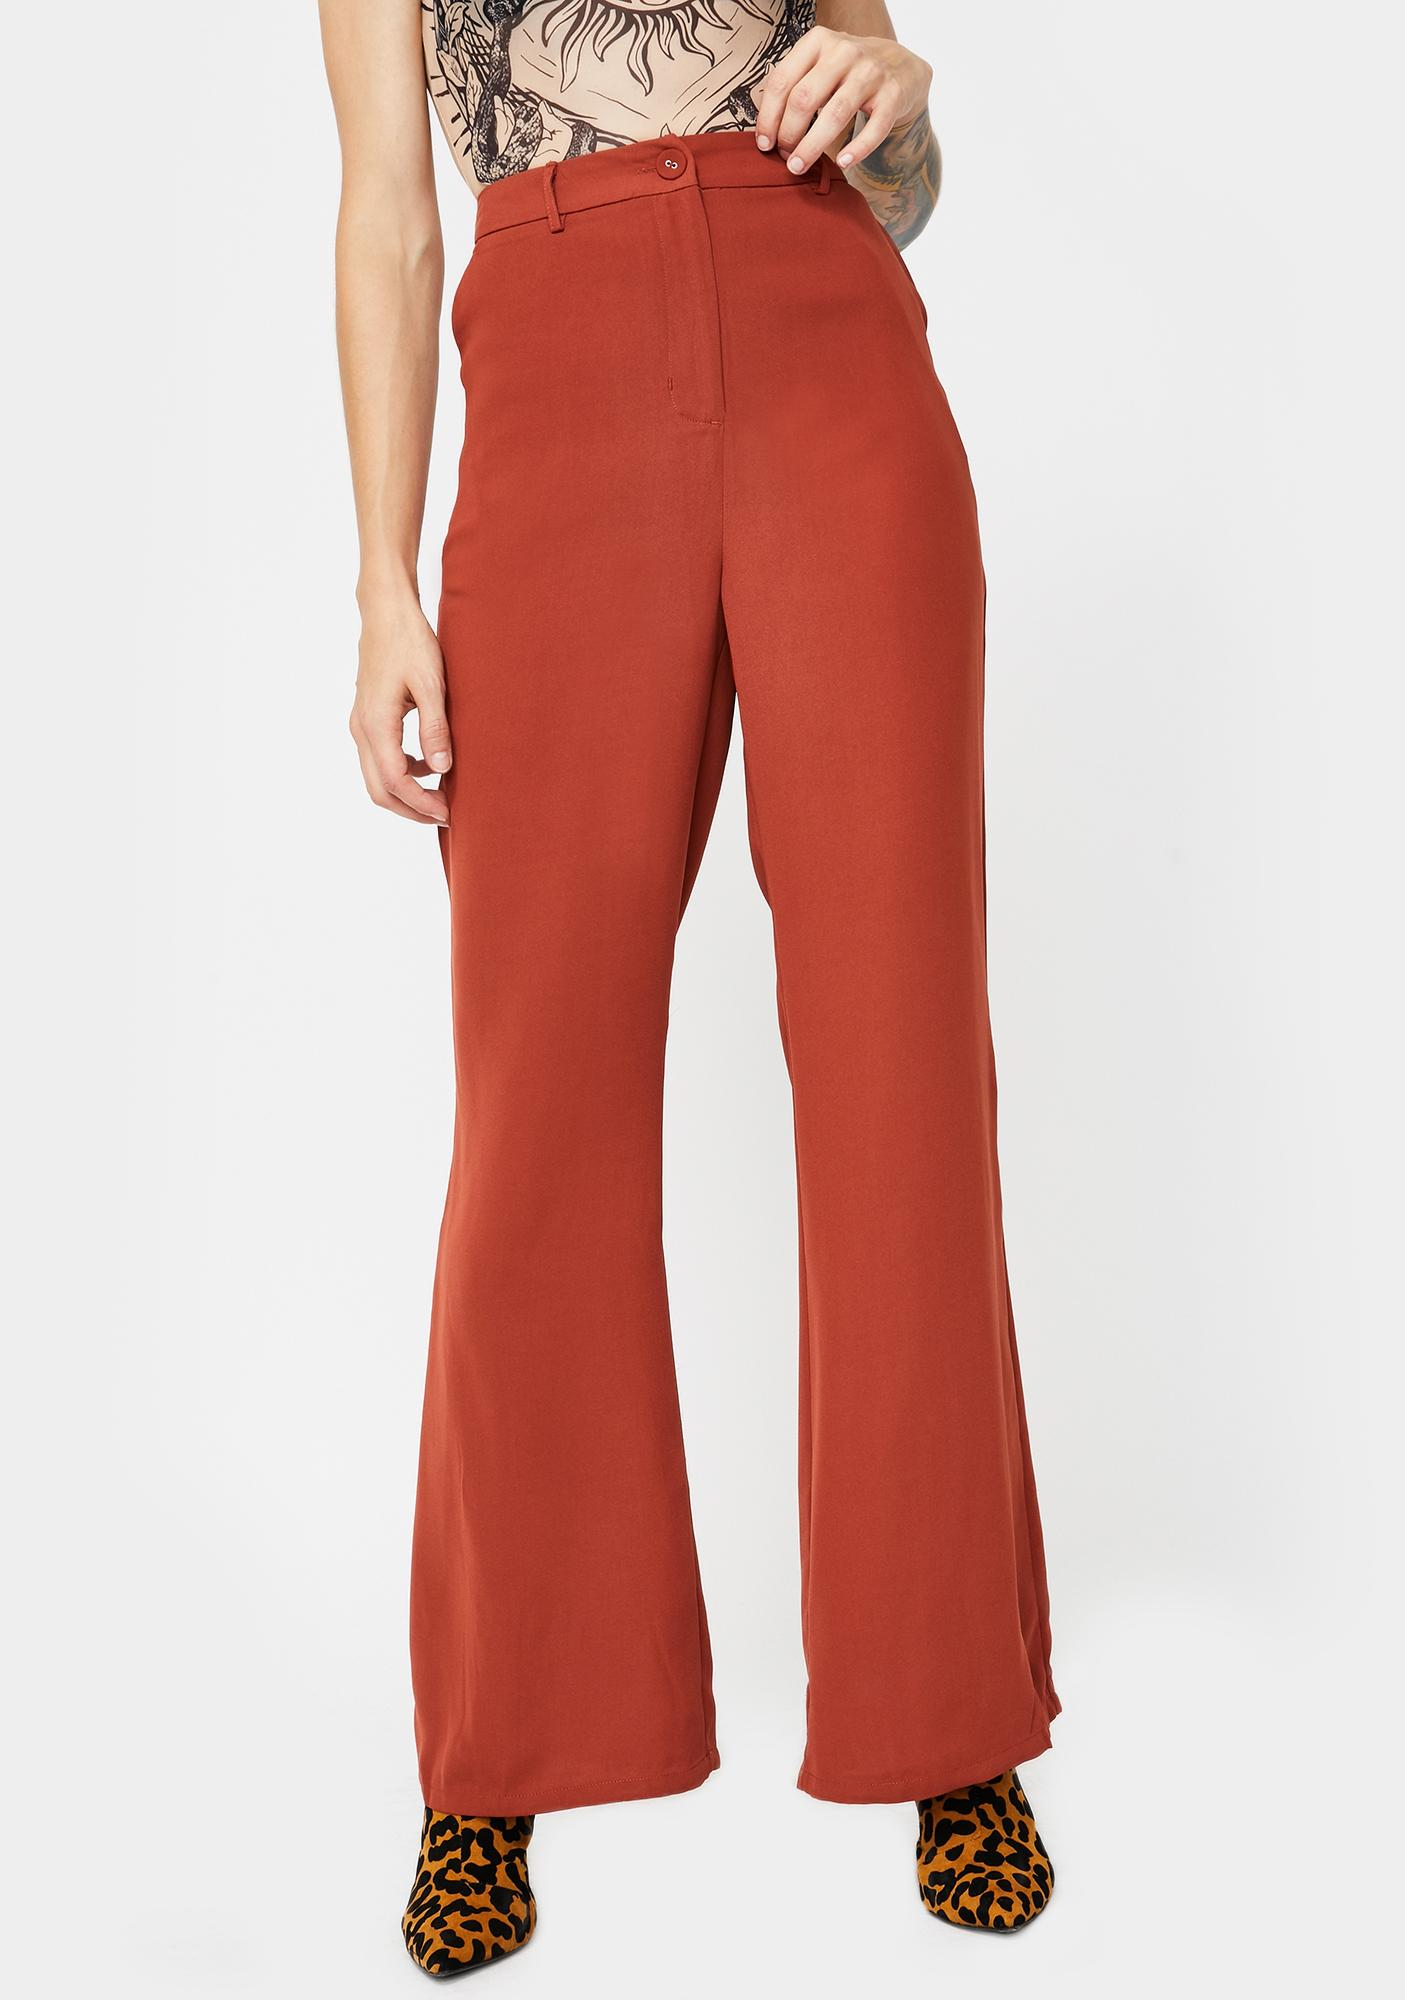 Glamorous Red Rust Flared Trousers